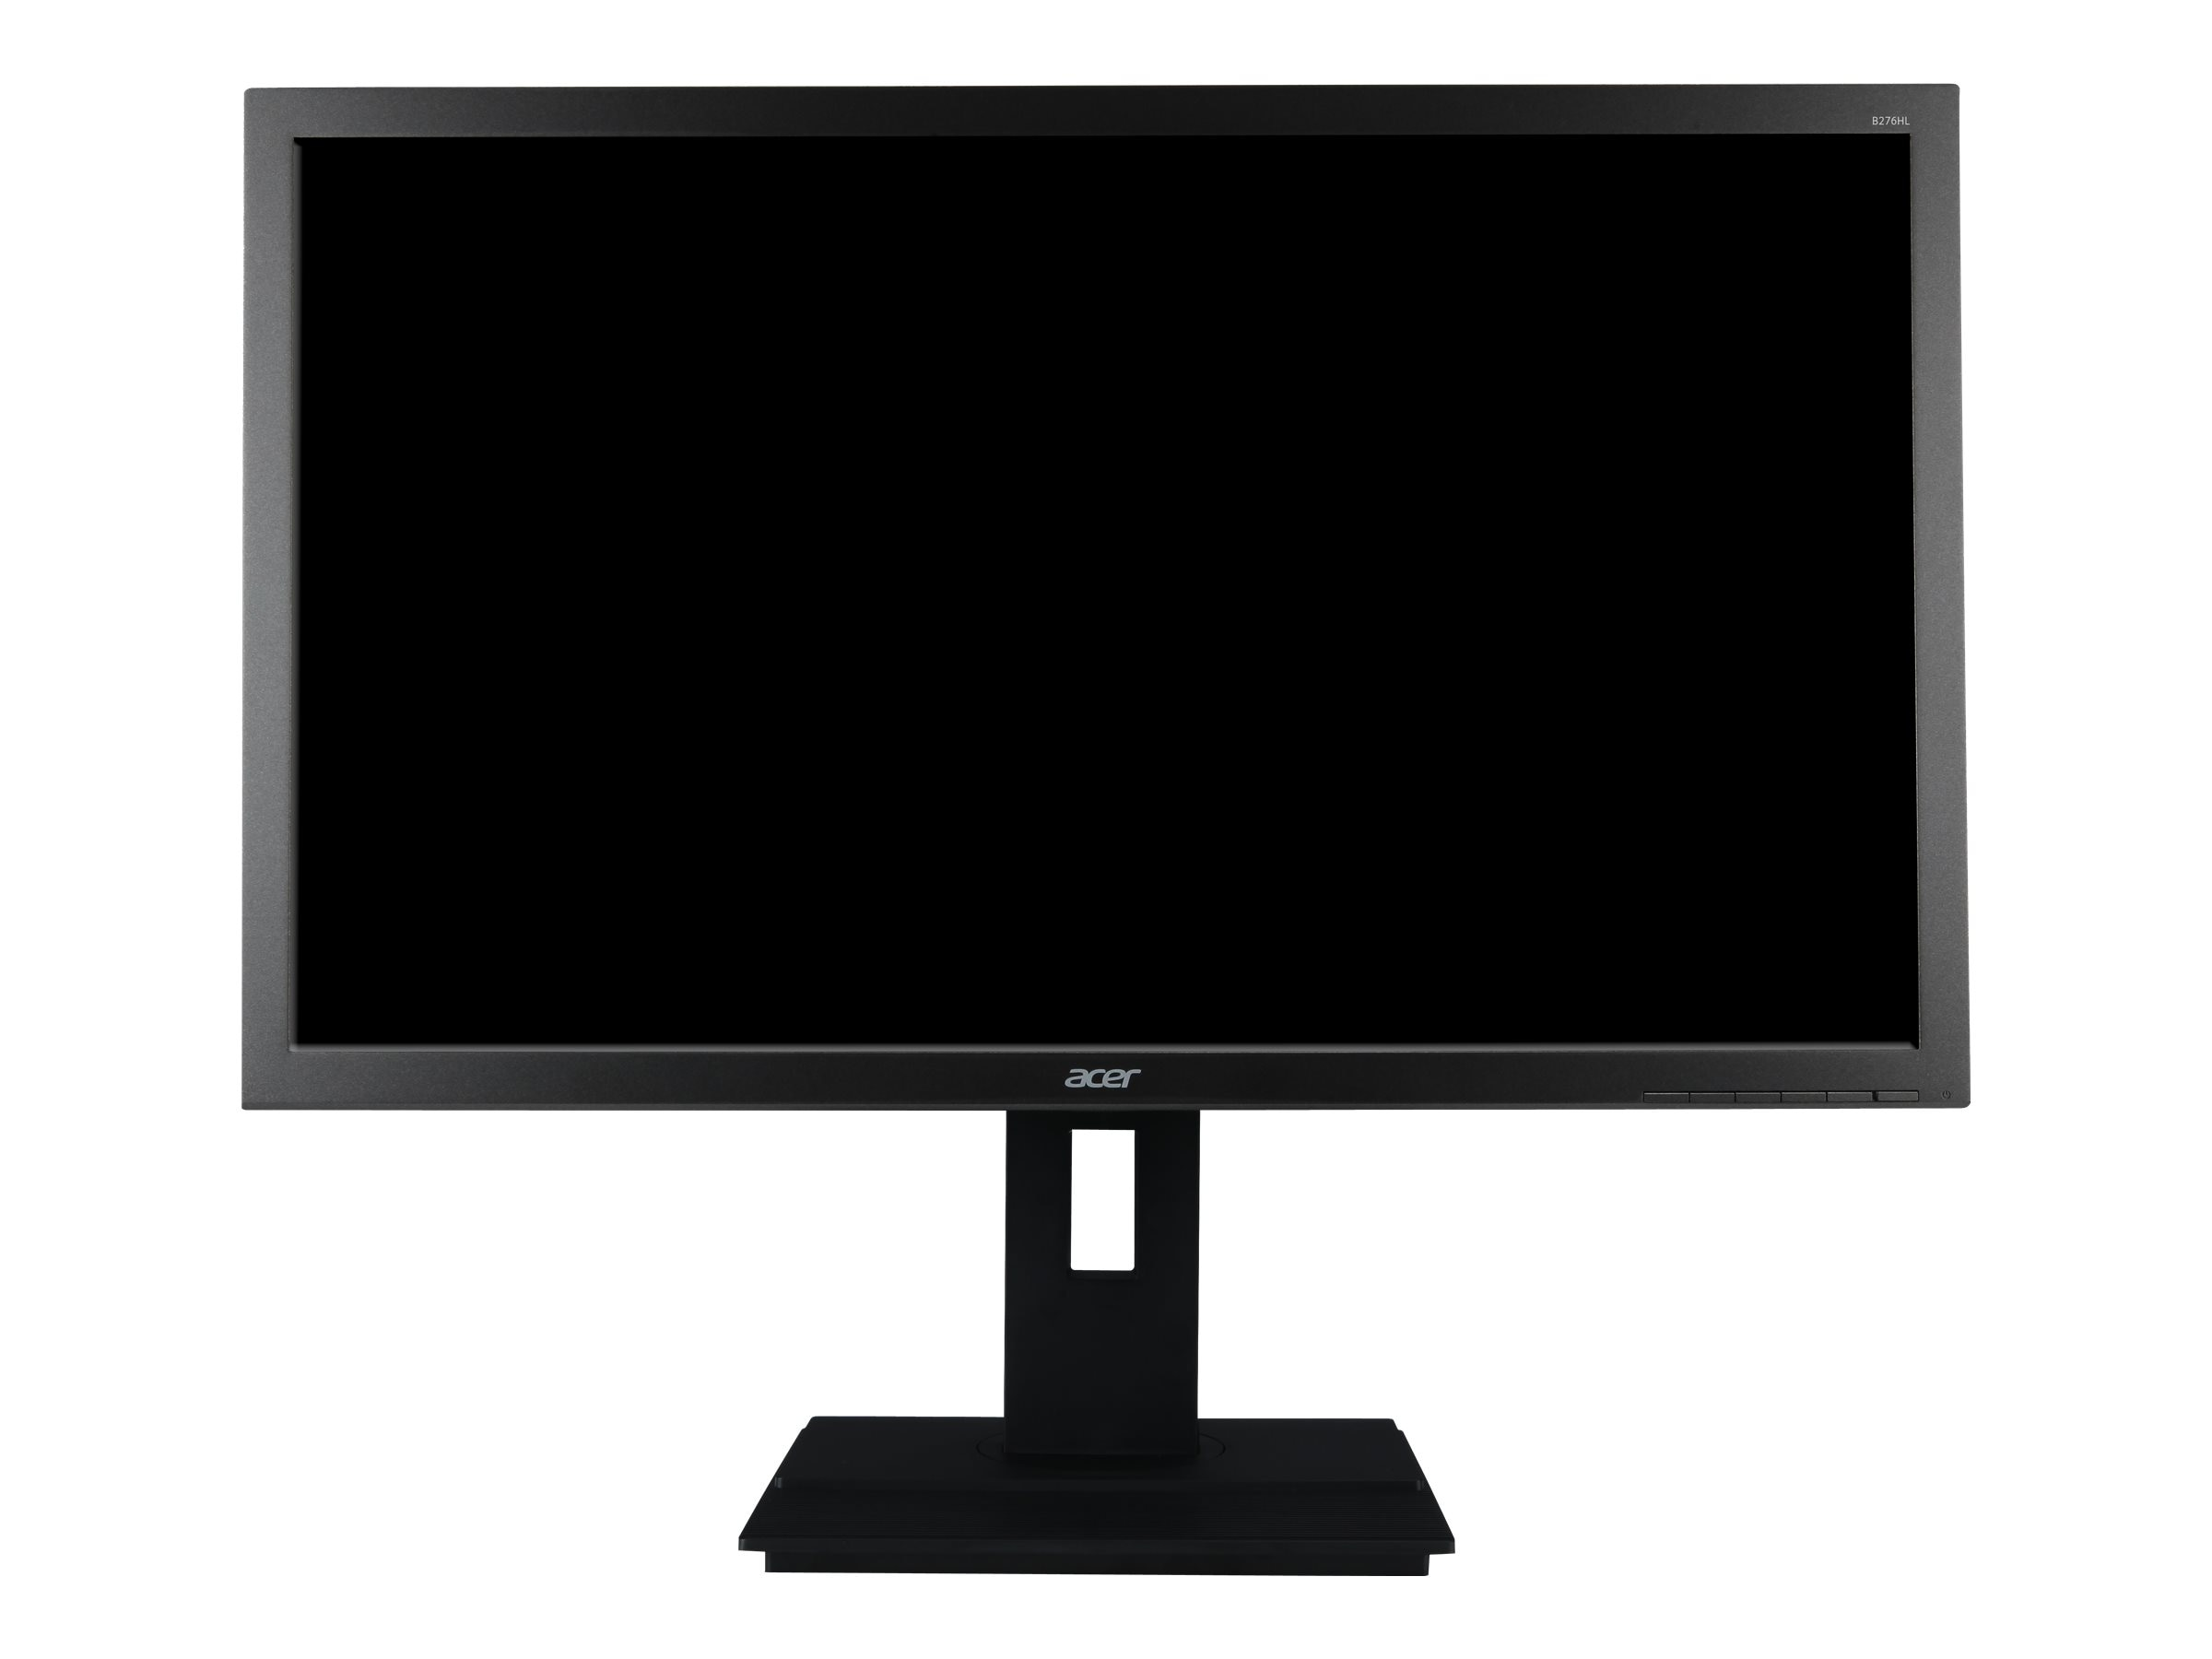 Acer 27 Full HD LED-LCD Monitor, Black, UM.HB6AA.C01, 30603312, Monitors - LED-LCD